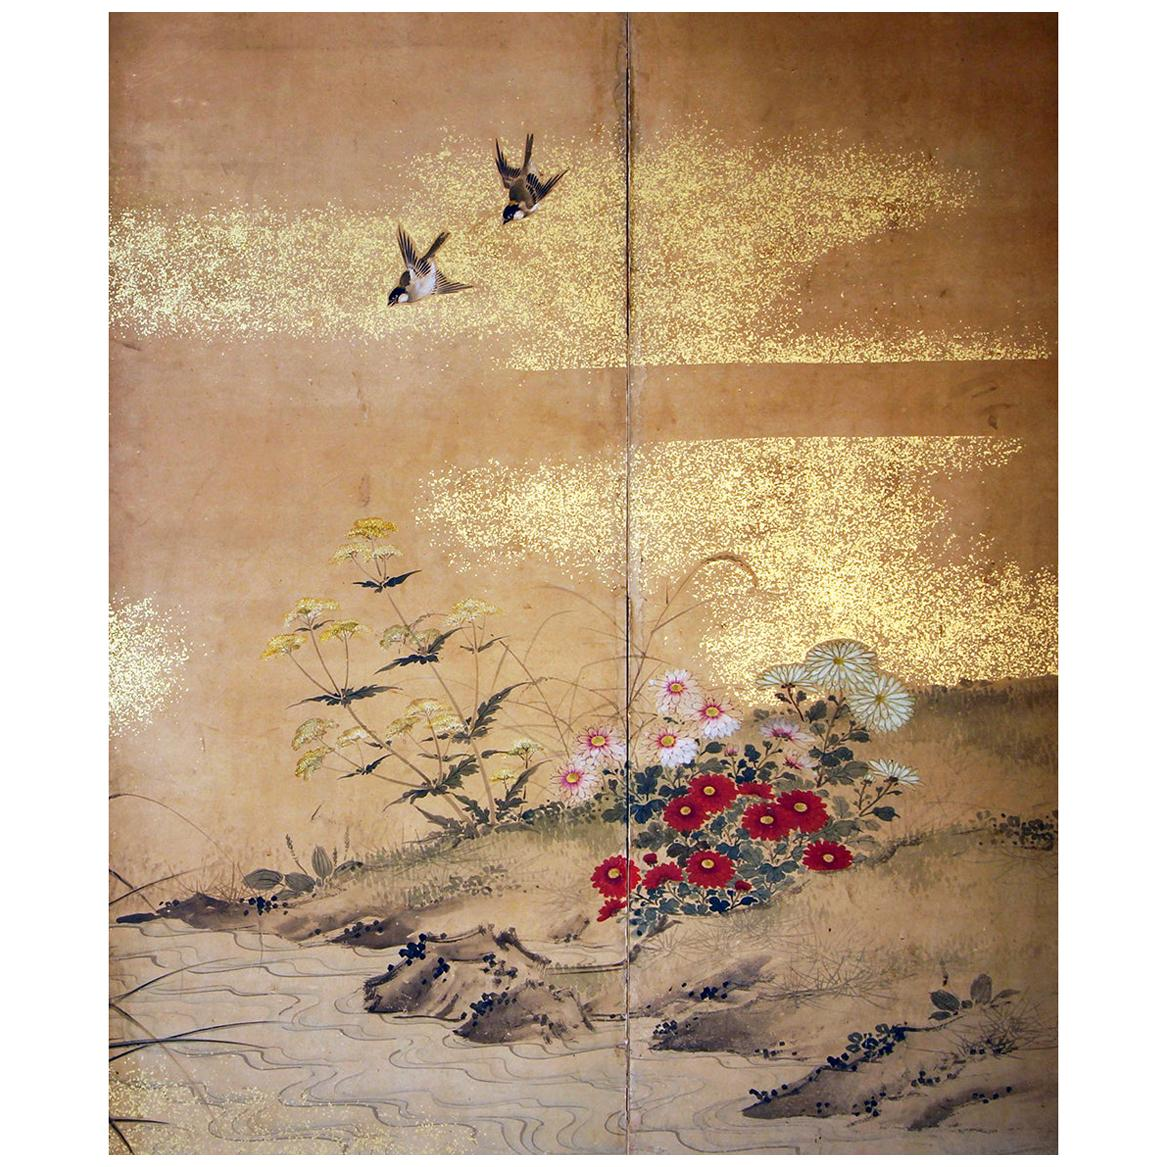 Edo 19th Century, Japanese Folding Screen Six Panels Hand Painted on Rise Paper